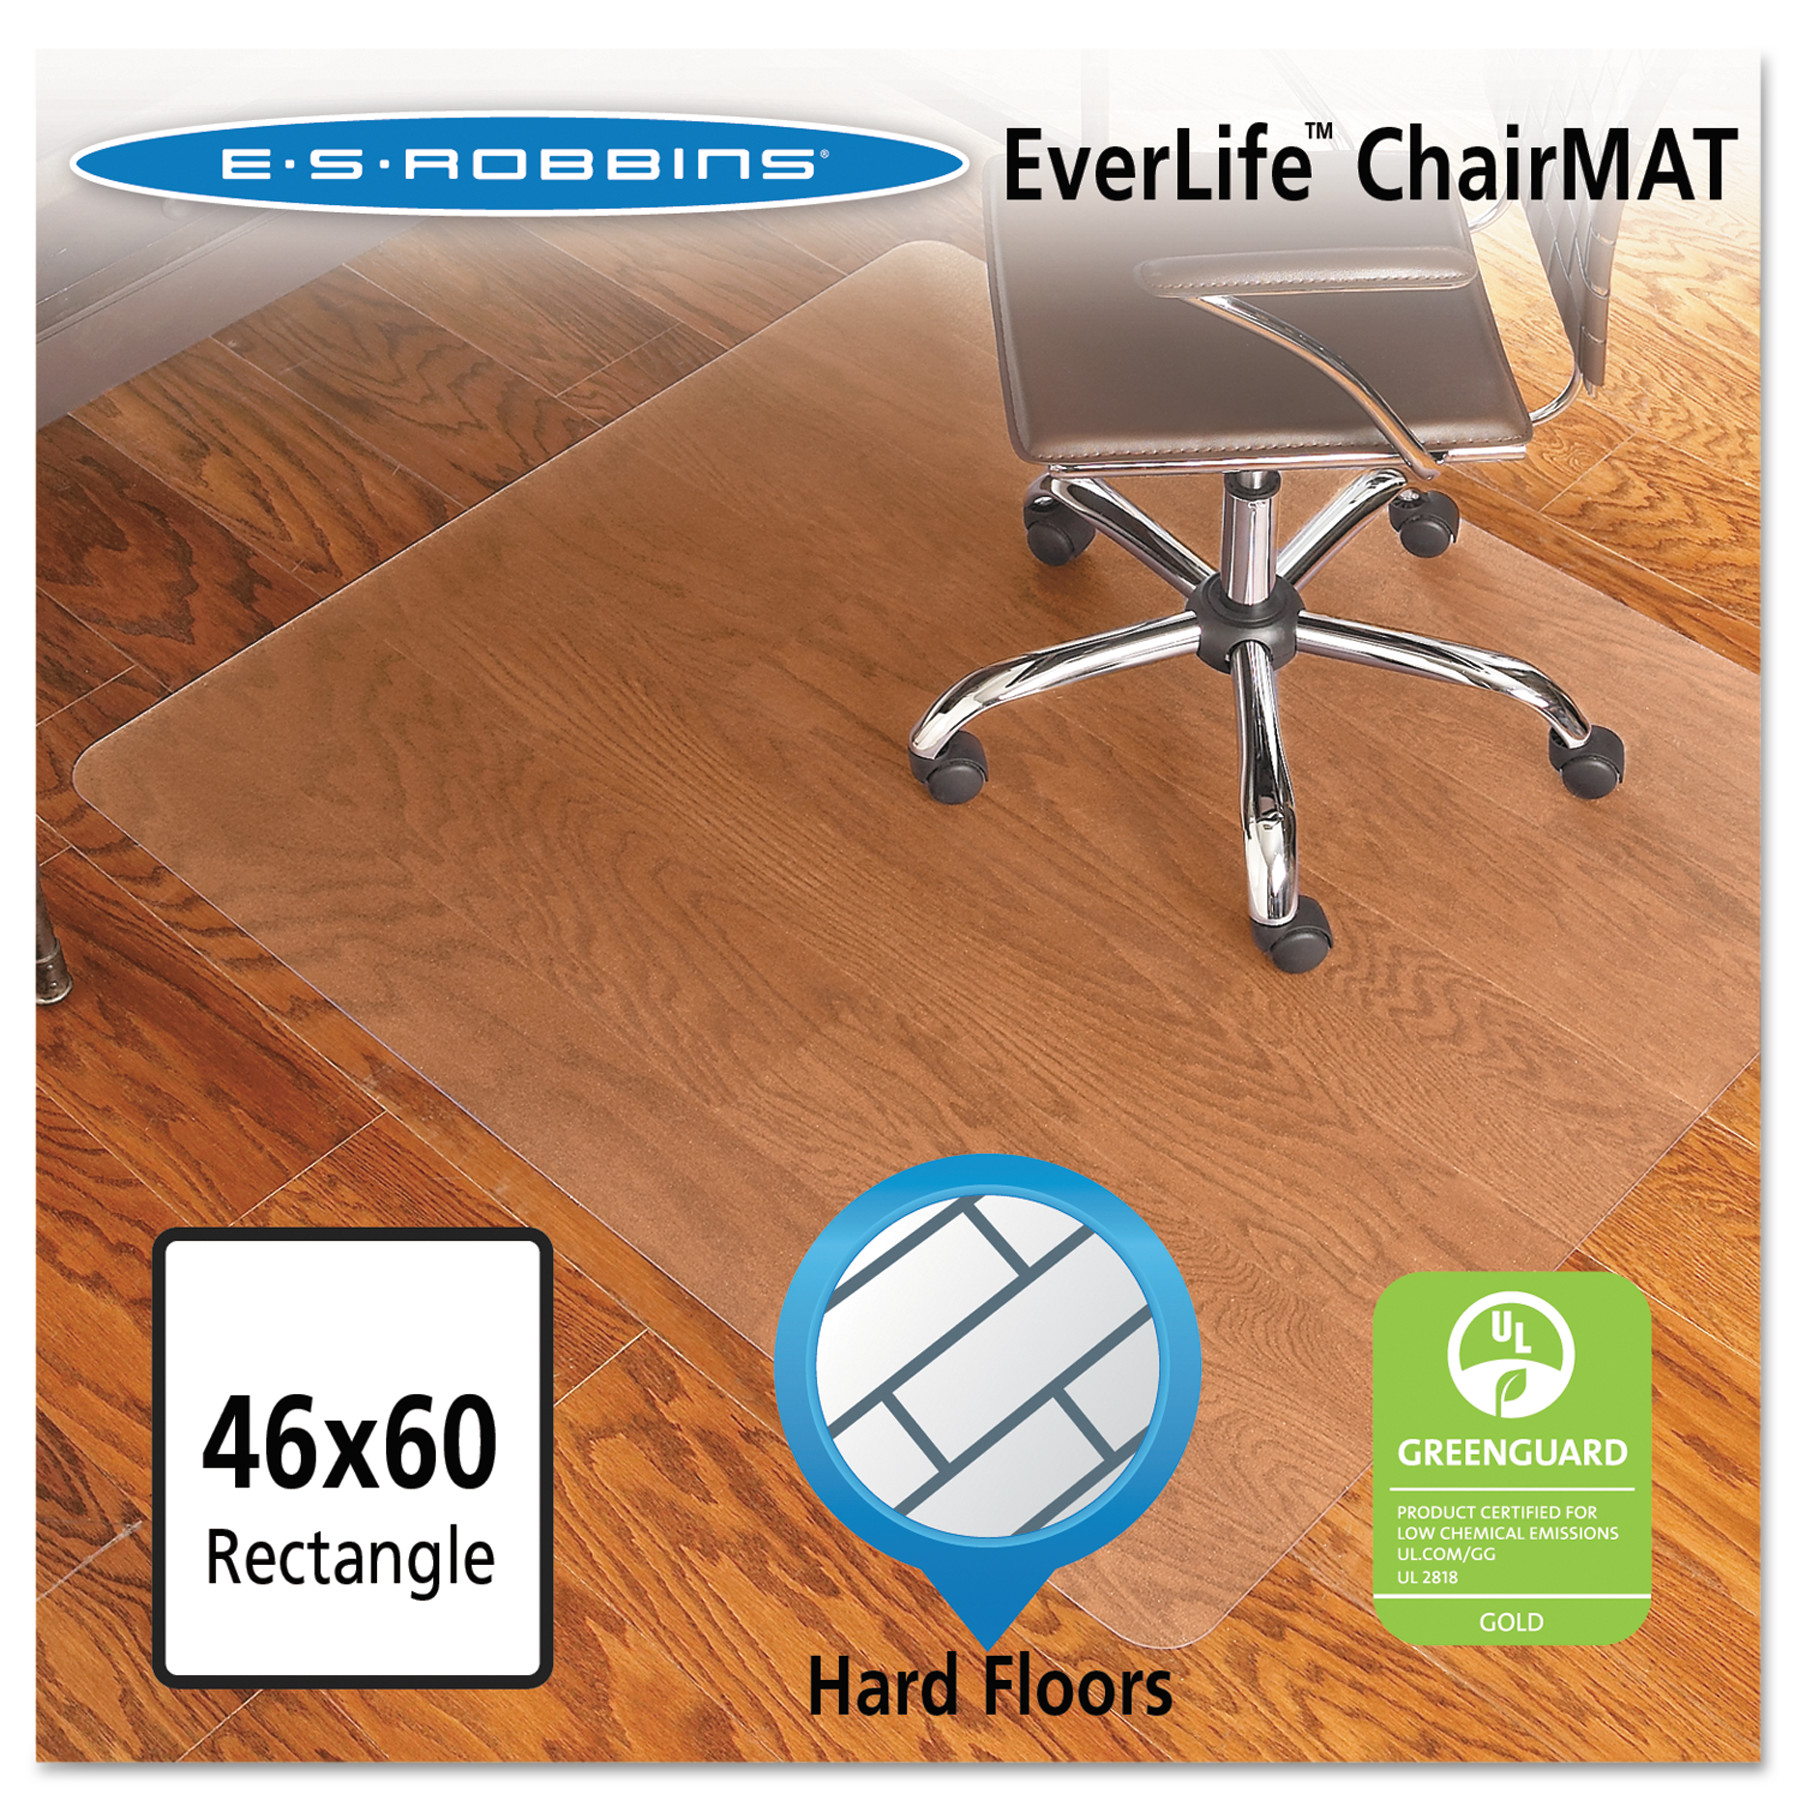 es robbins 46x60 rectangle chair mat economy series for hard